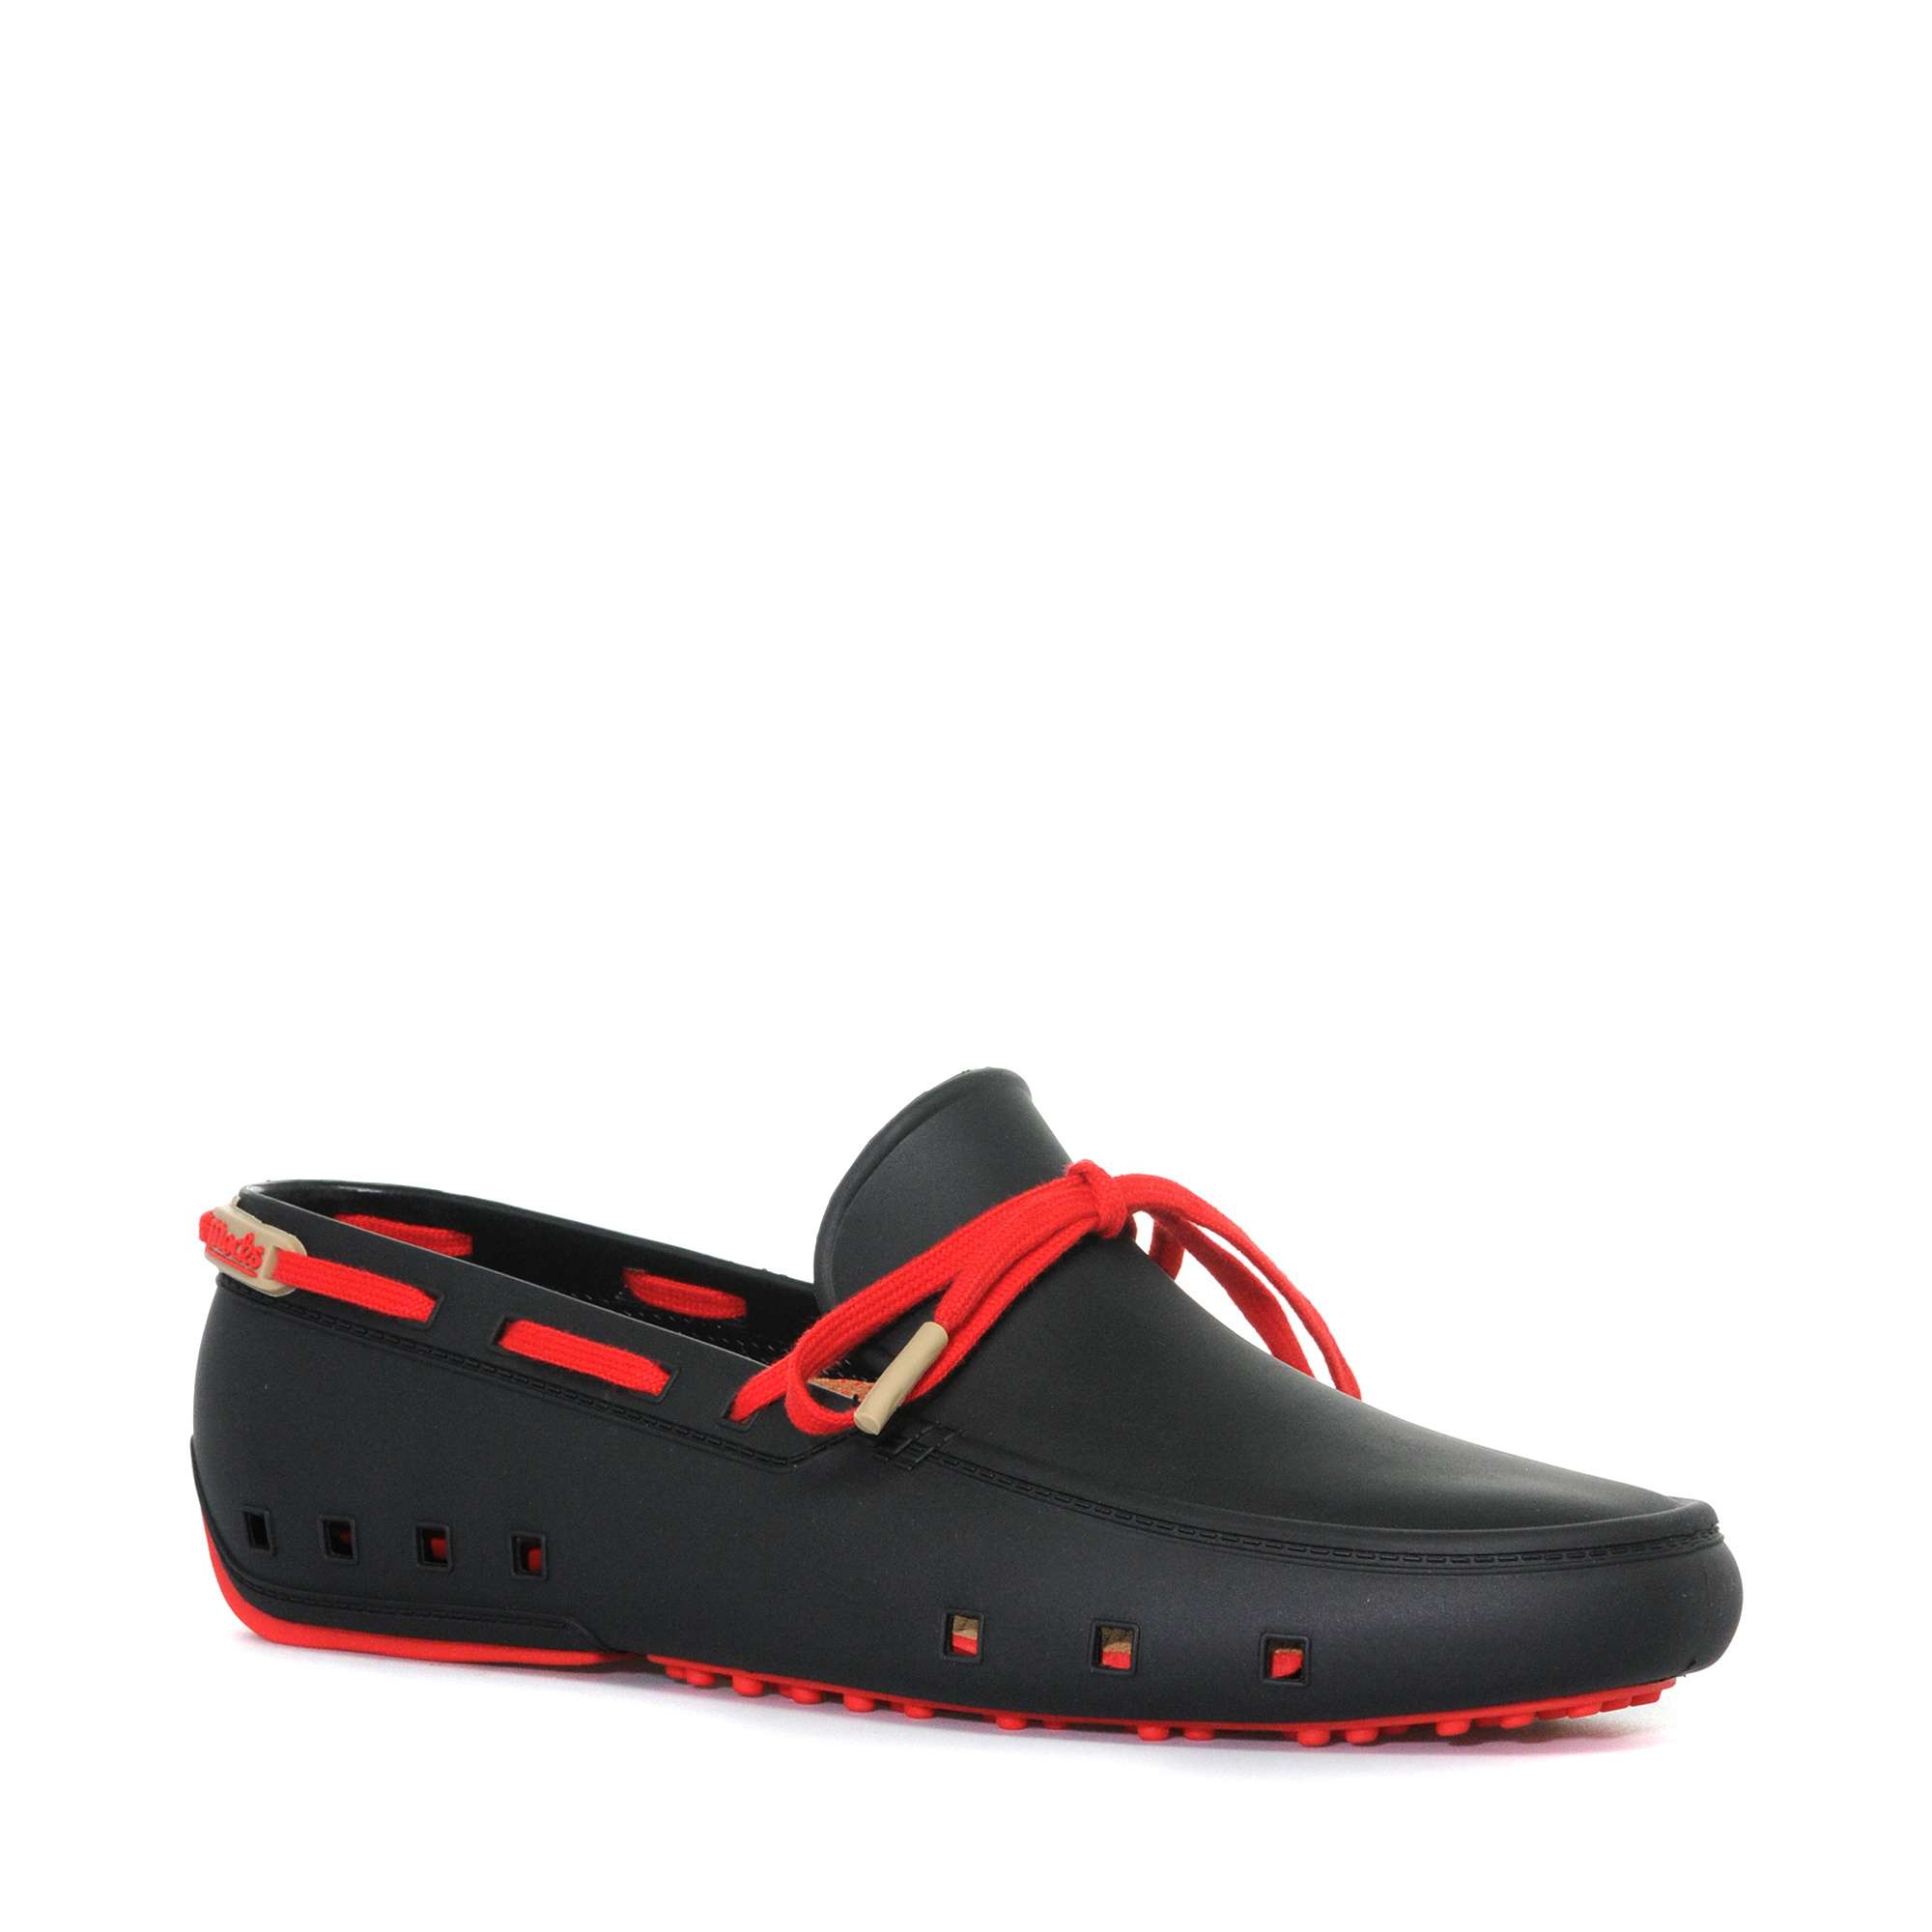 MOCKS Men's Classic Shoe